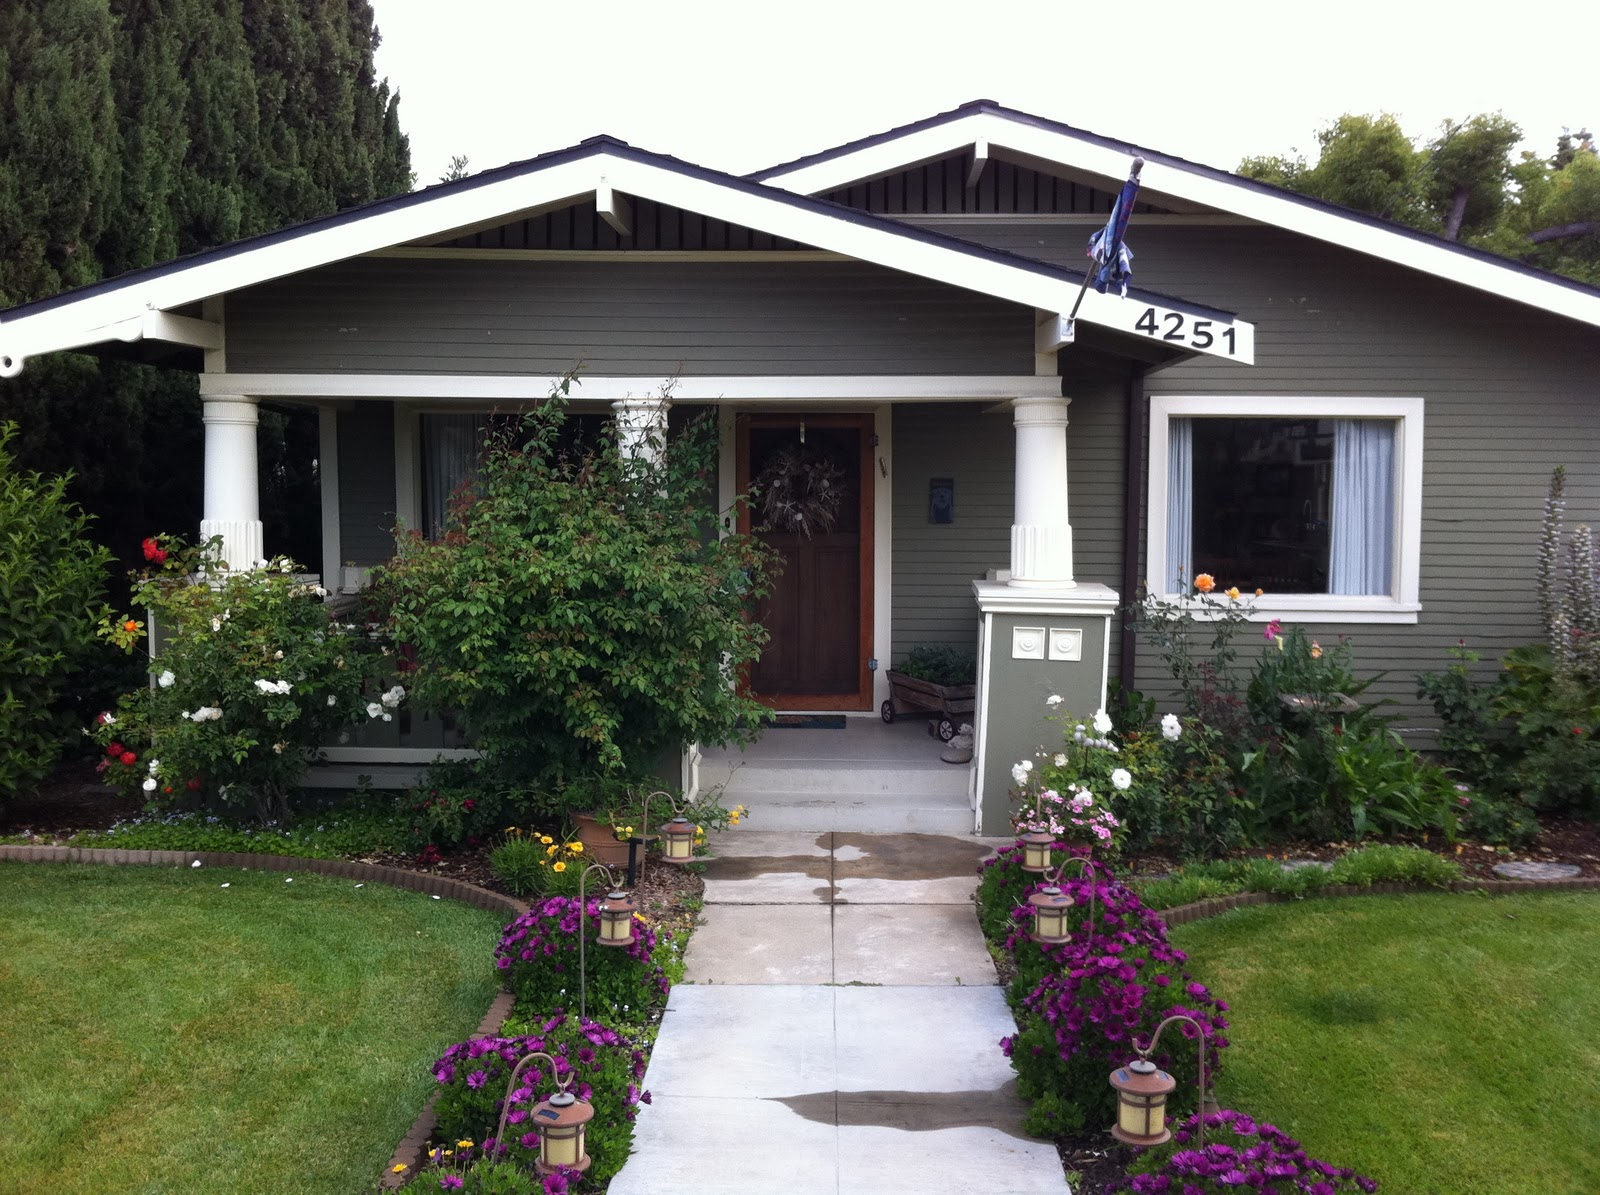 California craftsman bungalow front porch california for Craftsman style homes for sale in california